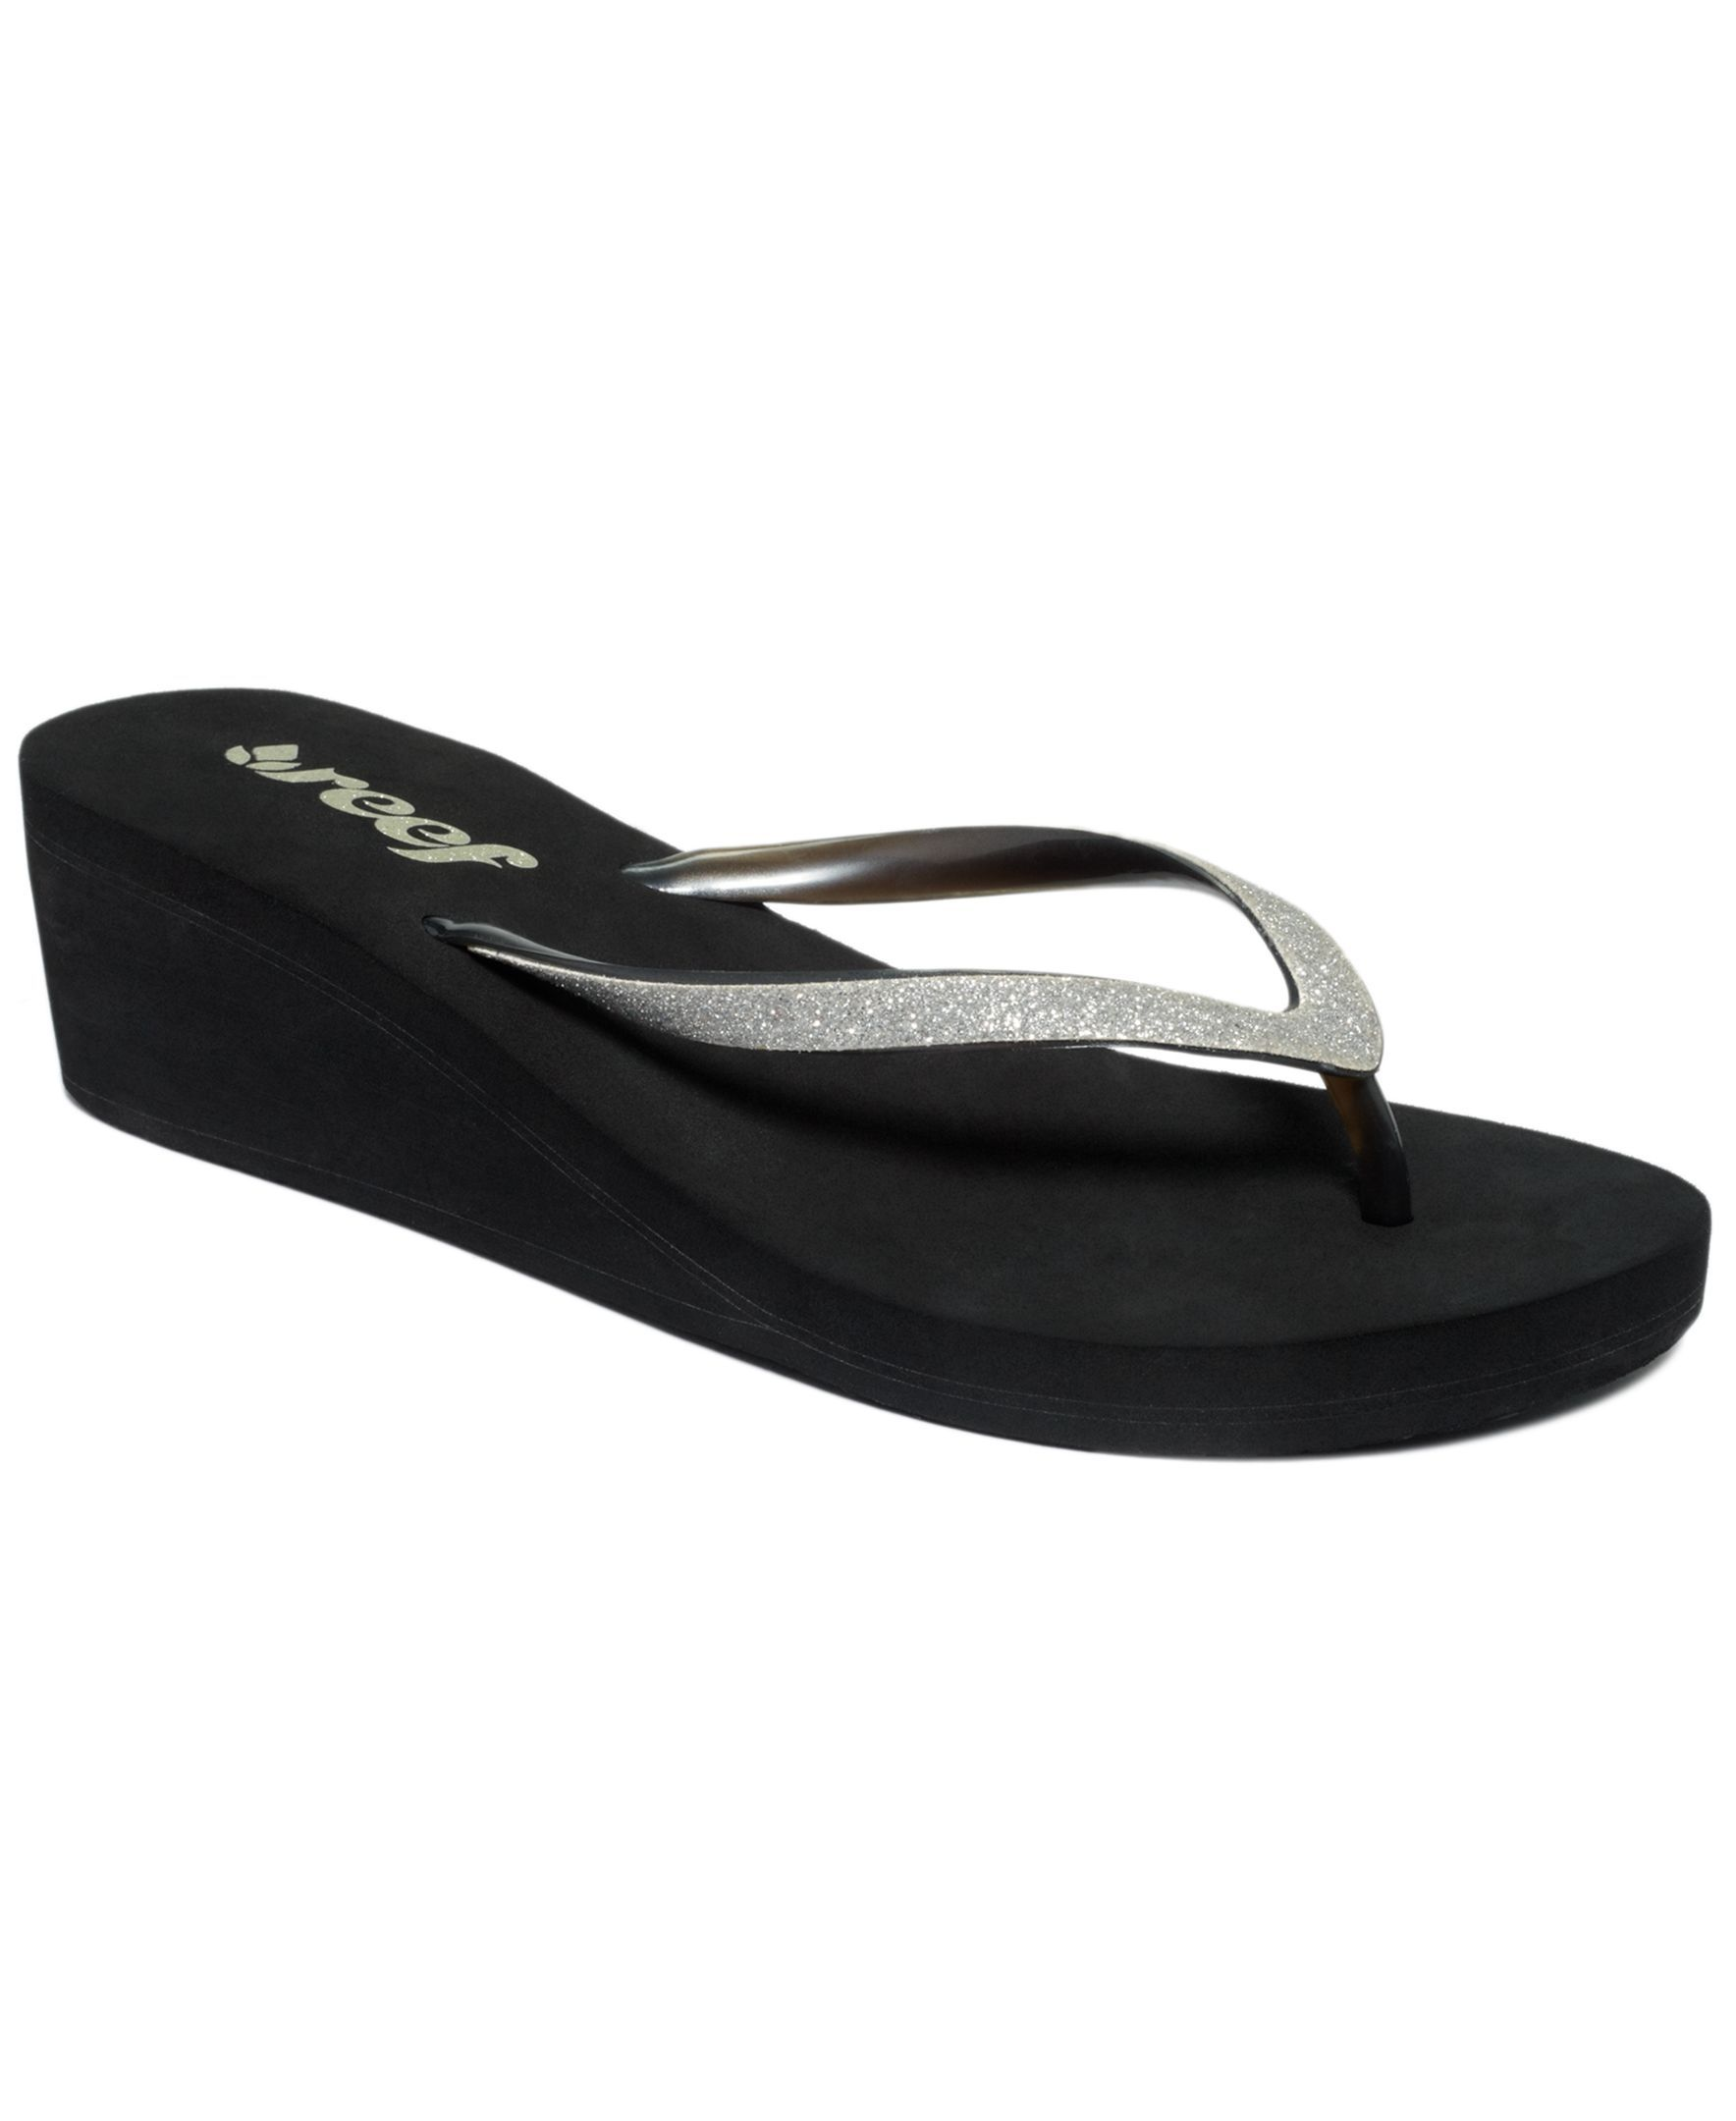 1a055f3ecfd2e Reef Krystal Star Wedge Thong Sandals | Products | Reef shoes ...